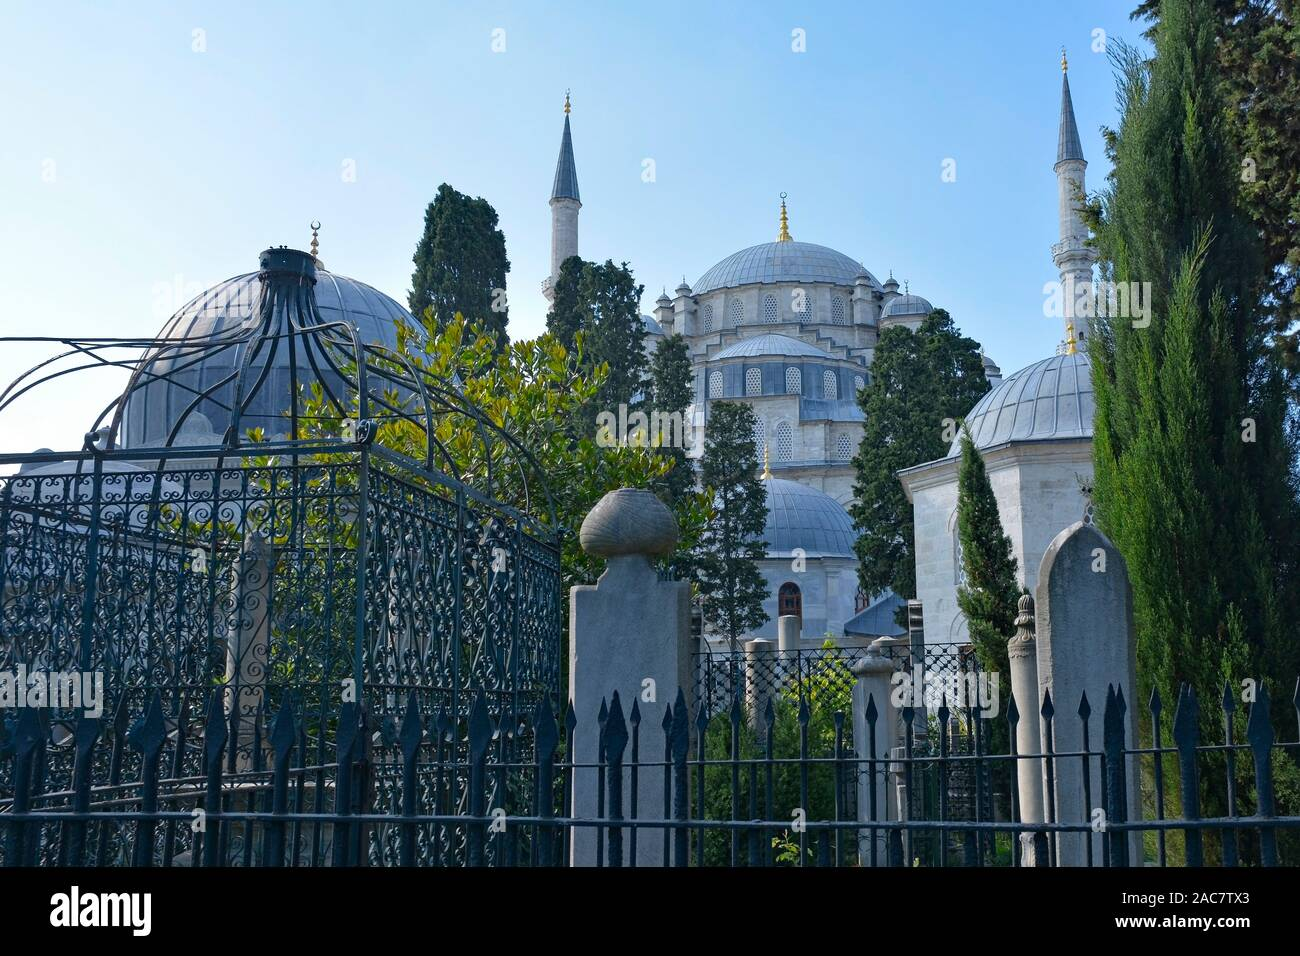 Historic gravestones in the cemetery of Fatih mosque in Istanbul, Turkey Stock Photo